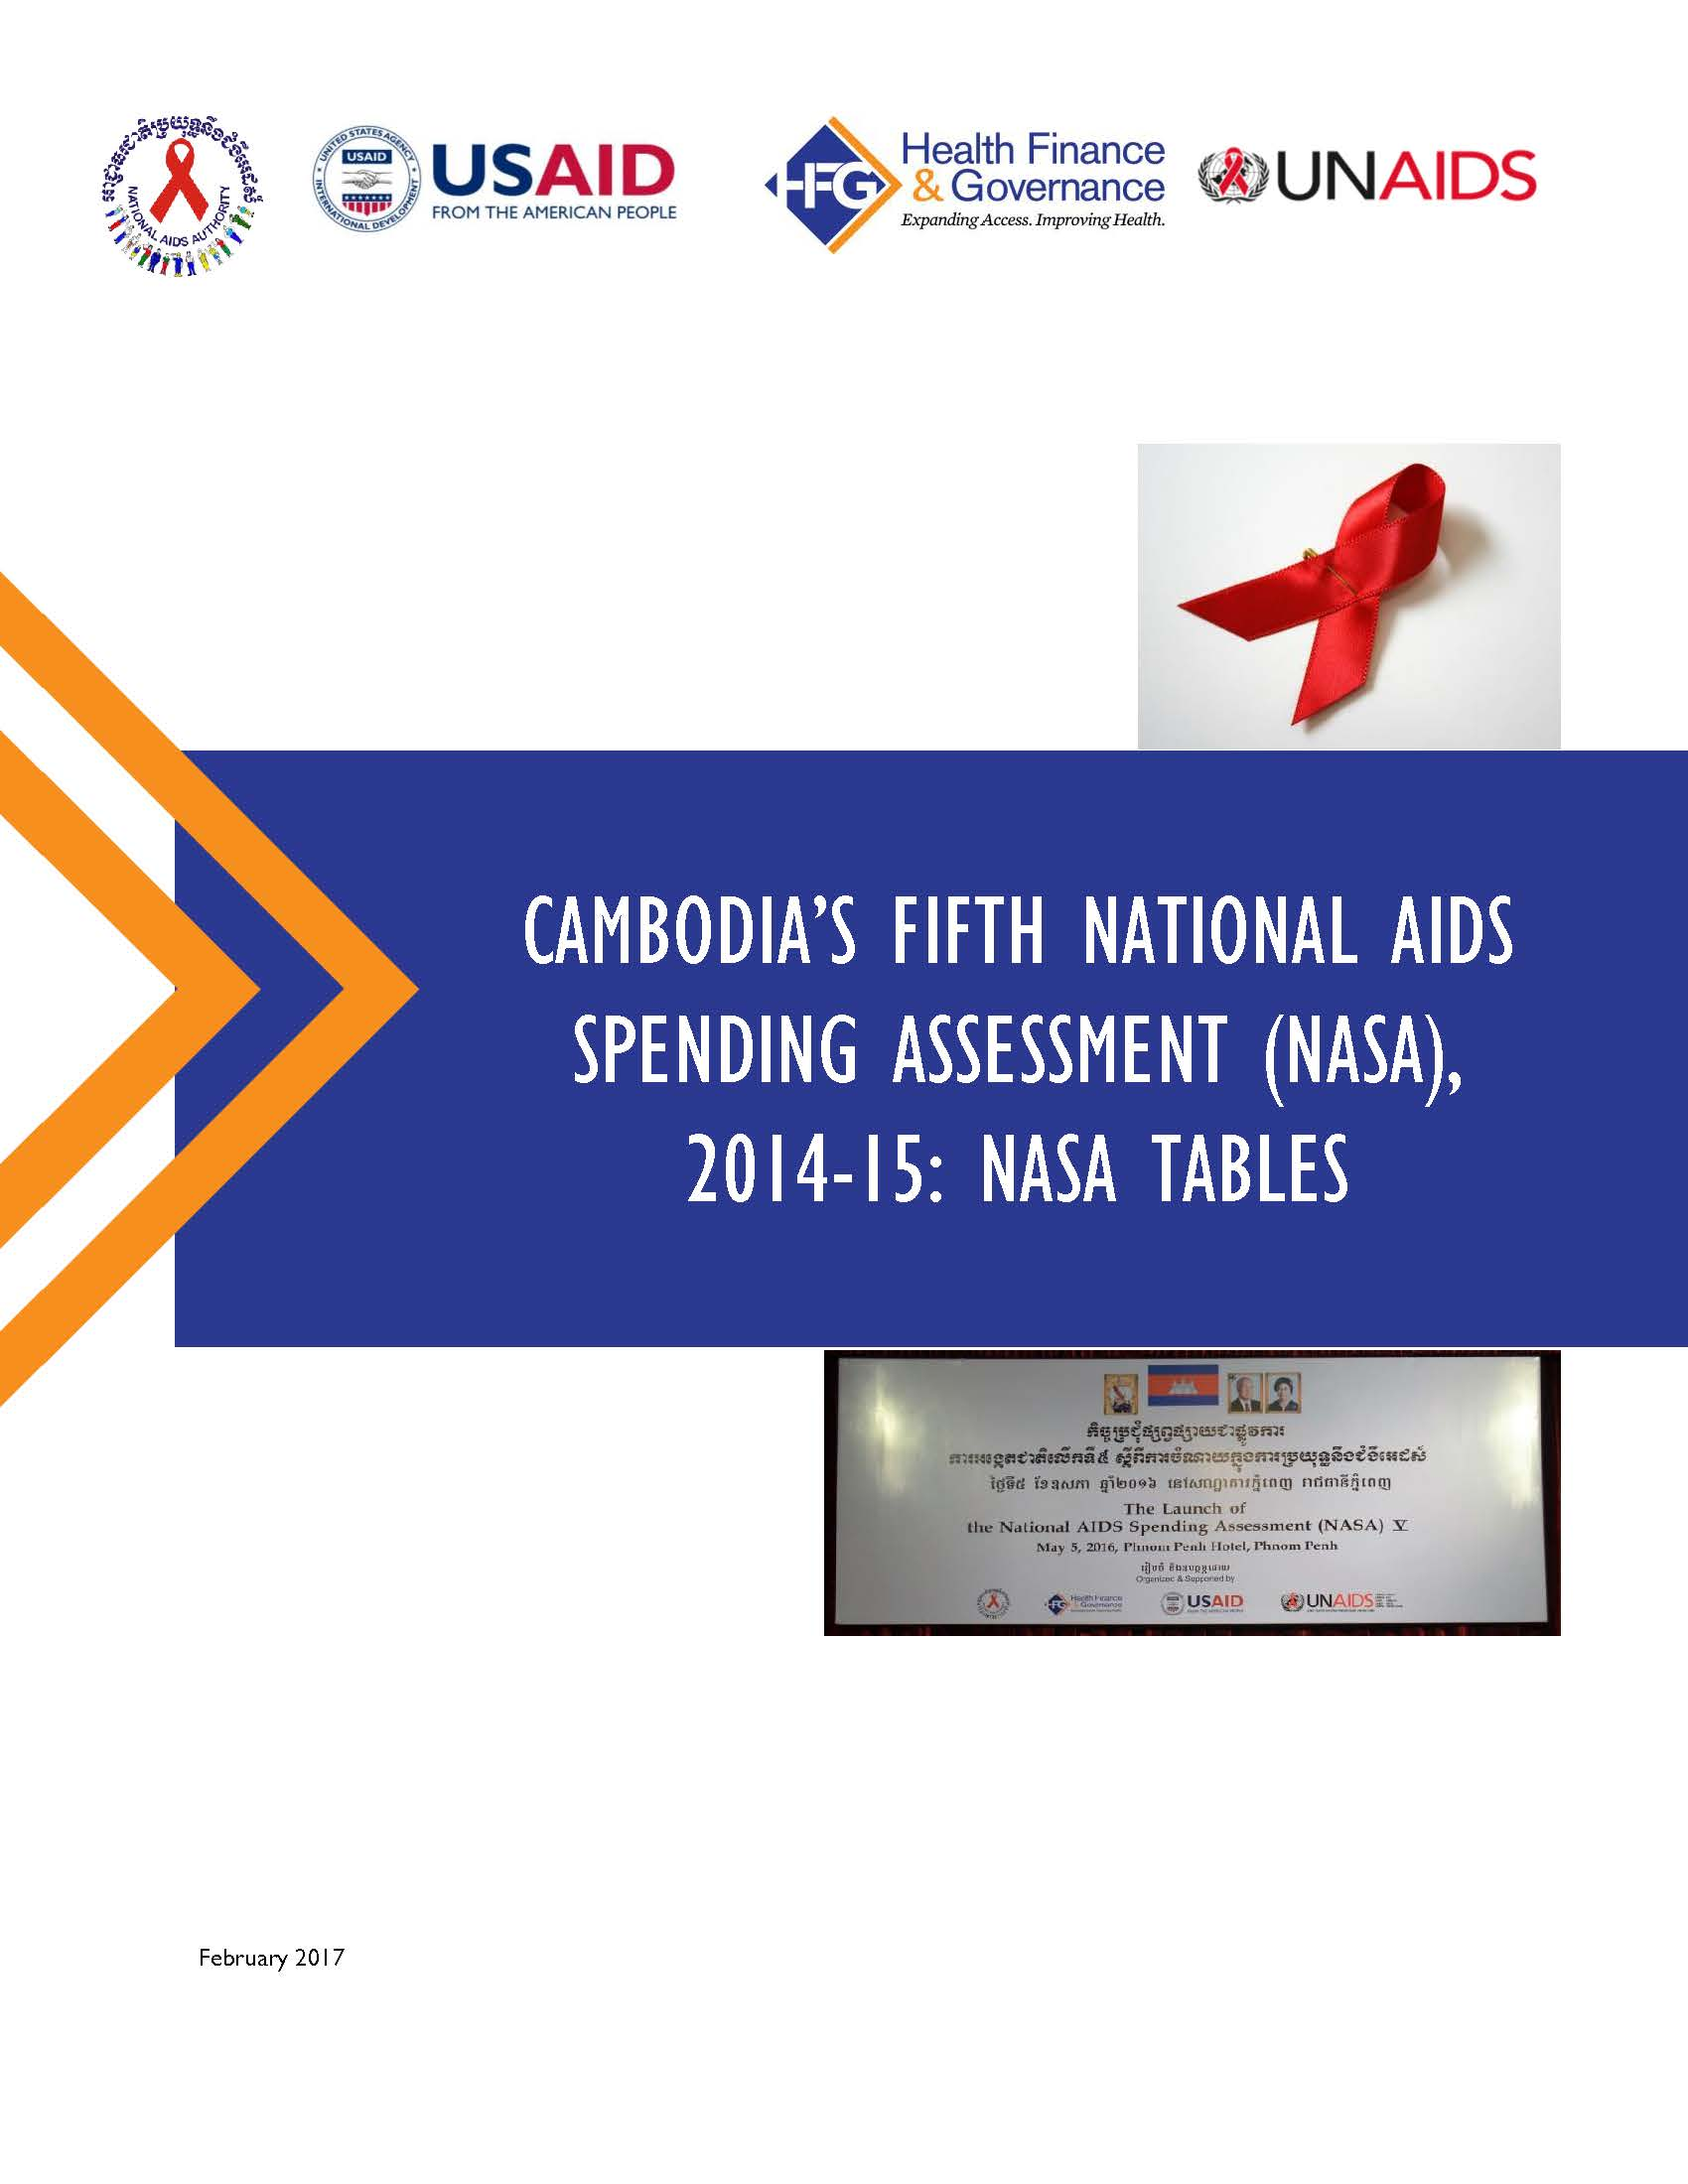 Cambodia fifth National AIDS Spending Assessment (NASA), 2014-15: NASA tables